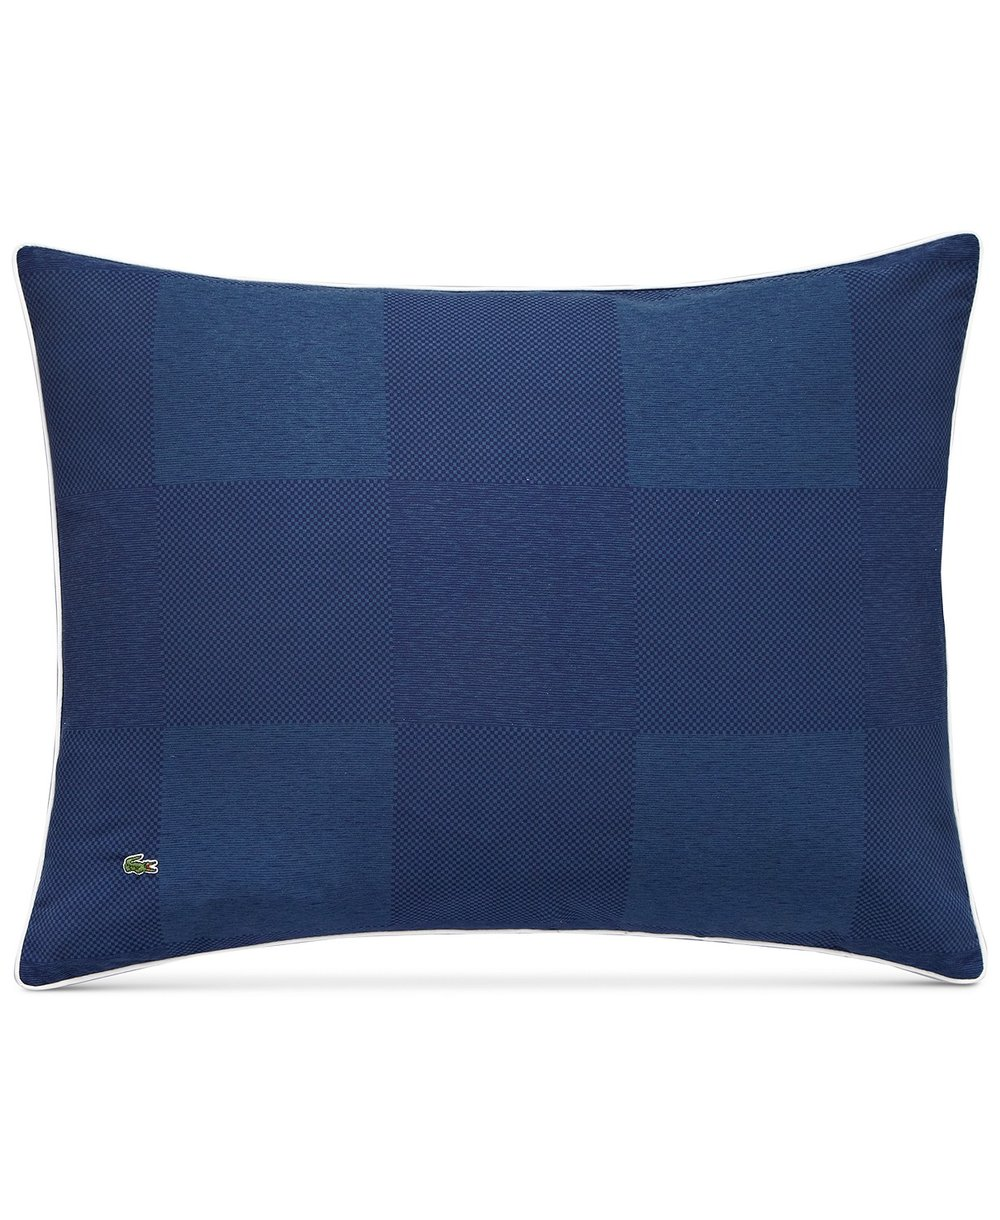 Lacoste, $119.99 with duvet cover